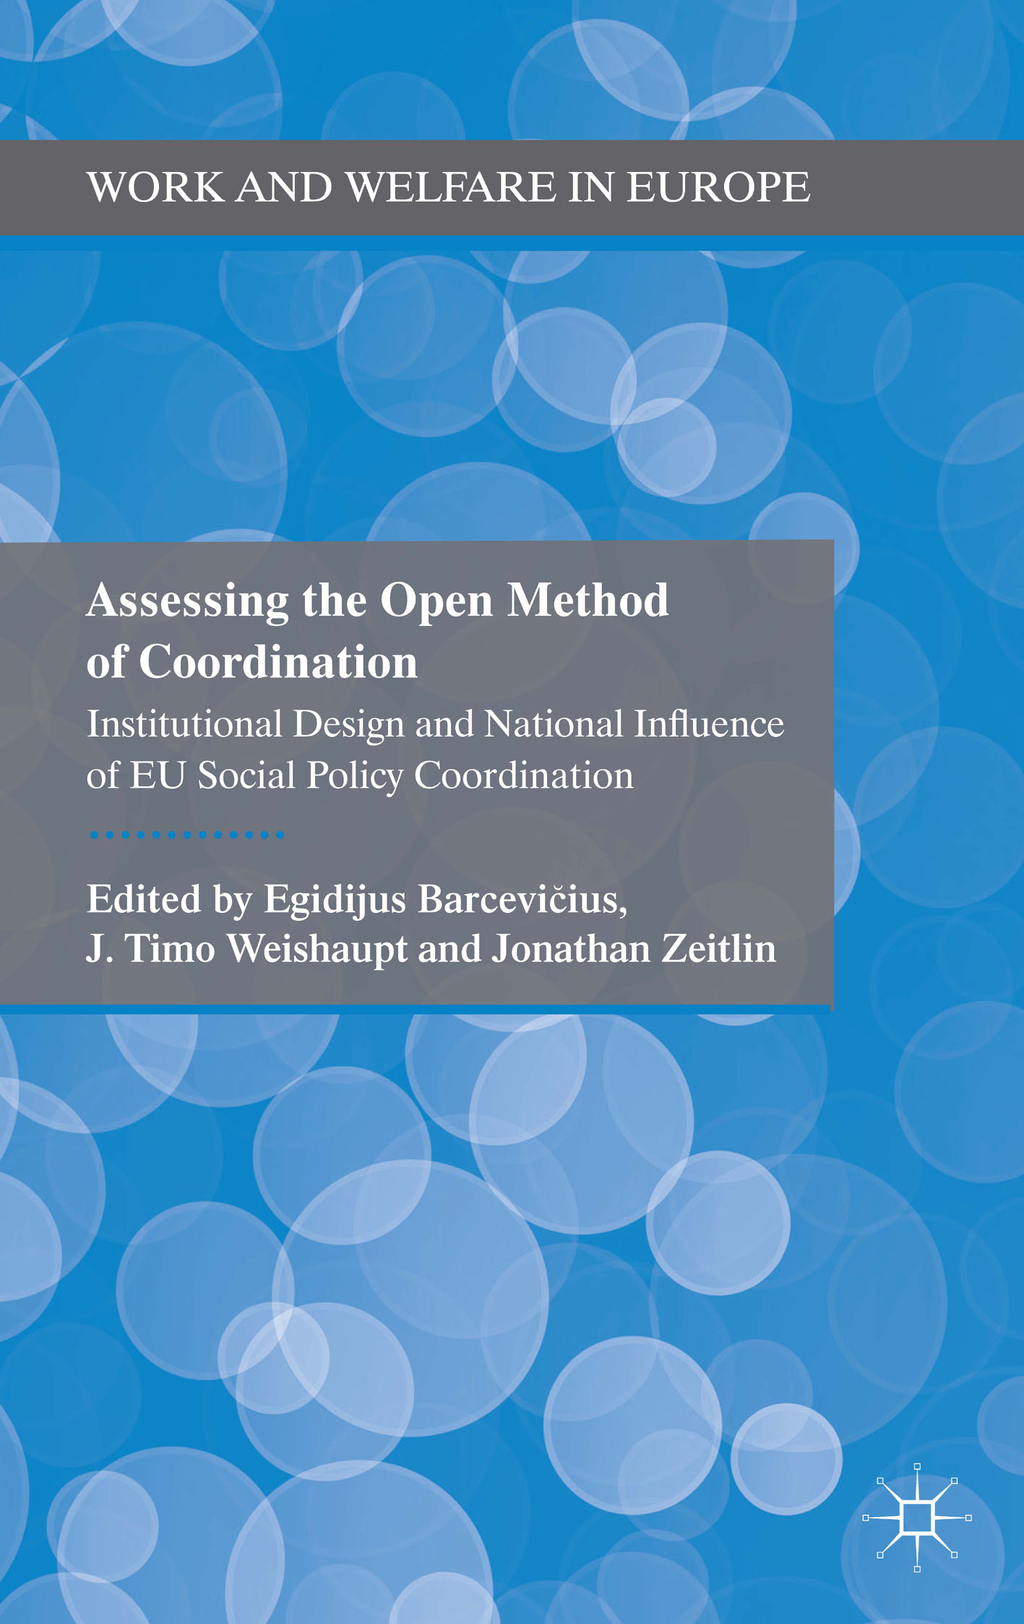 Assessing the Open Method of Coordination Institutional Design and National Influence of EU Social Policy Coordination